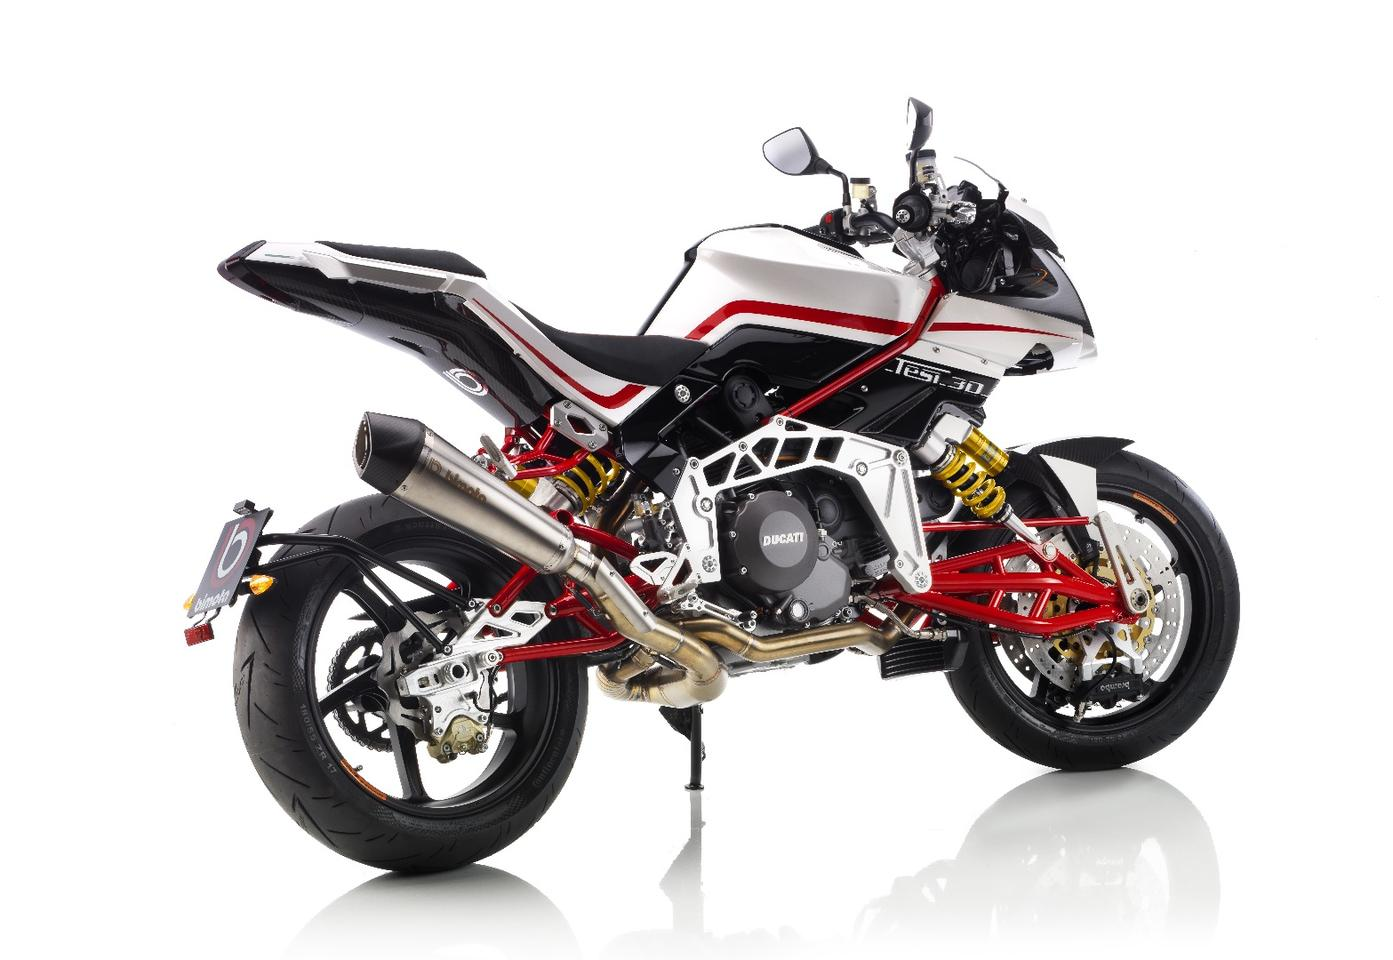 Bimota TESI 3D: hub-steered exotic goodness with a slightly underpowered motor